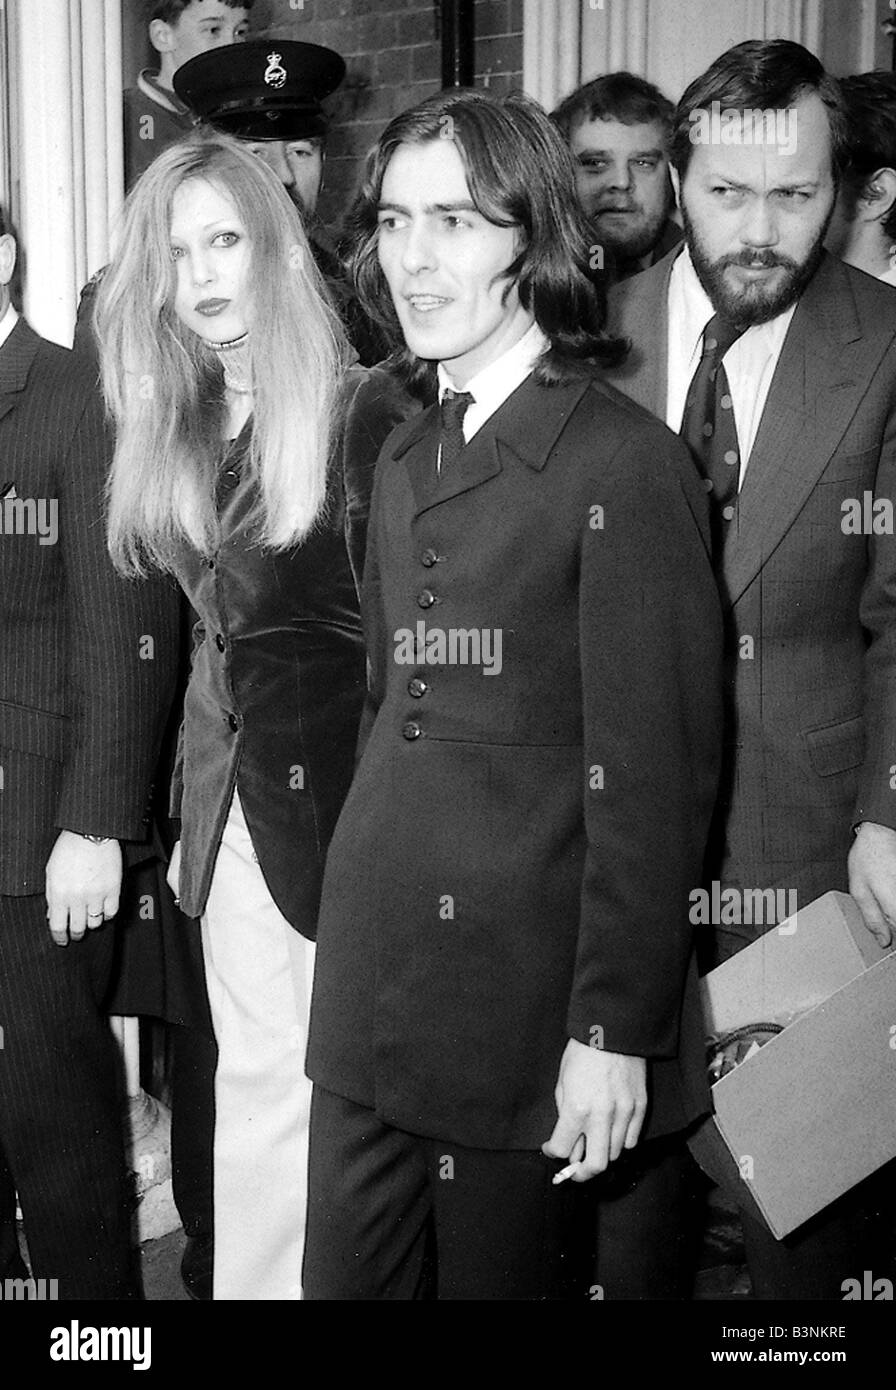 Beatles files 1969 George Harrison with wife Patti Boyd leaves Esher Walton magistrates court March 1969 - Stock Image